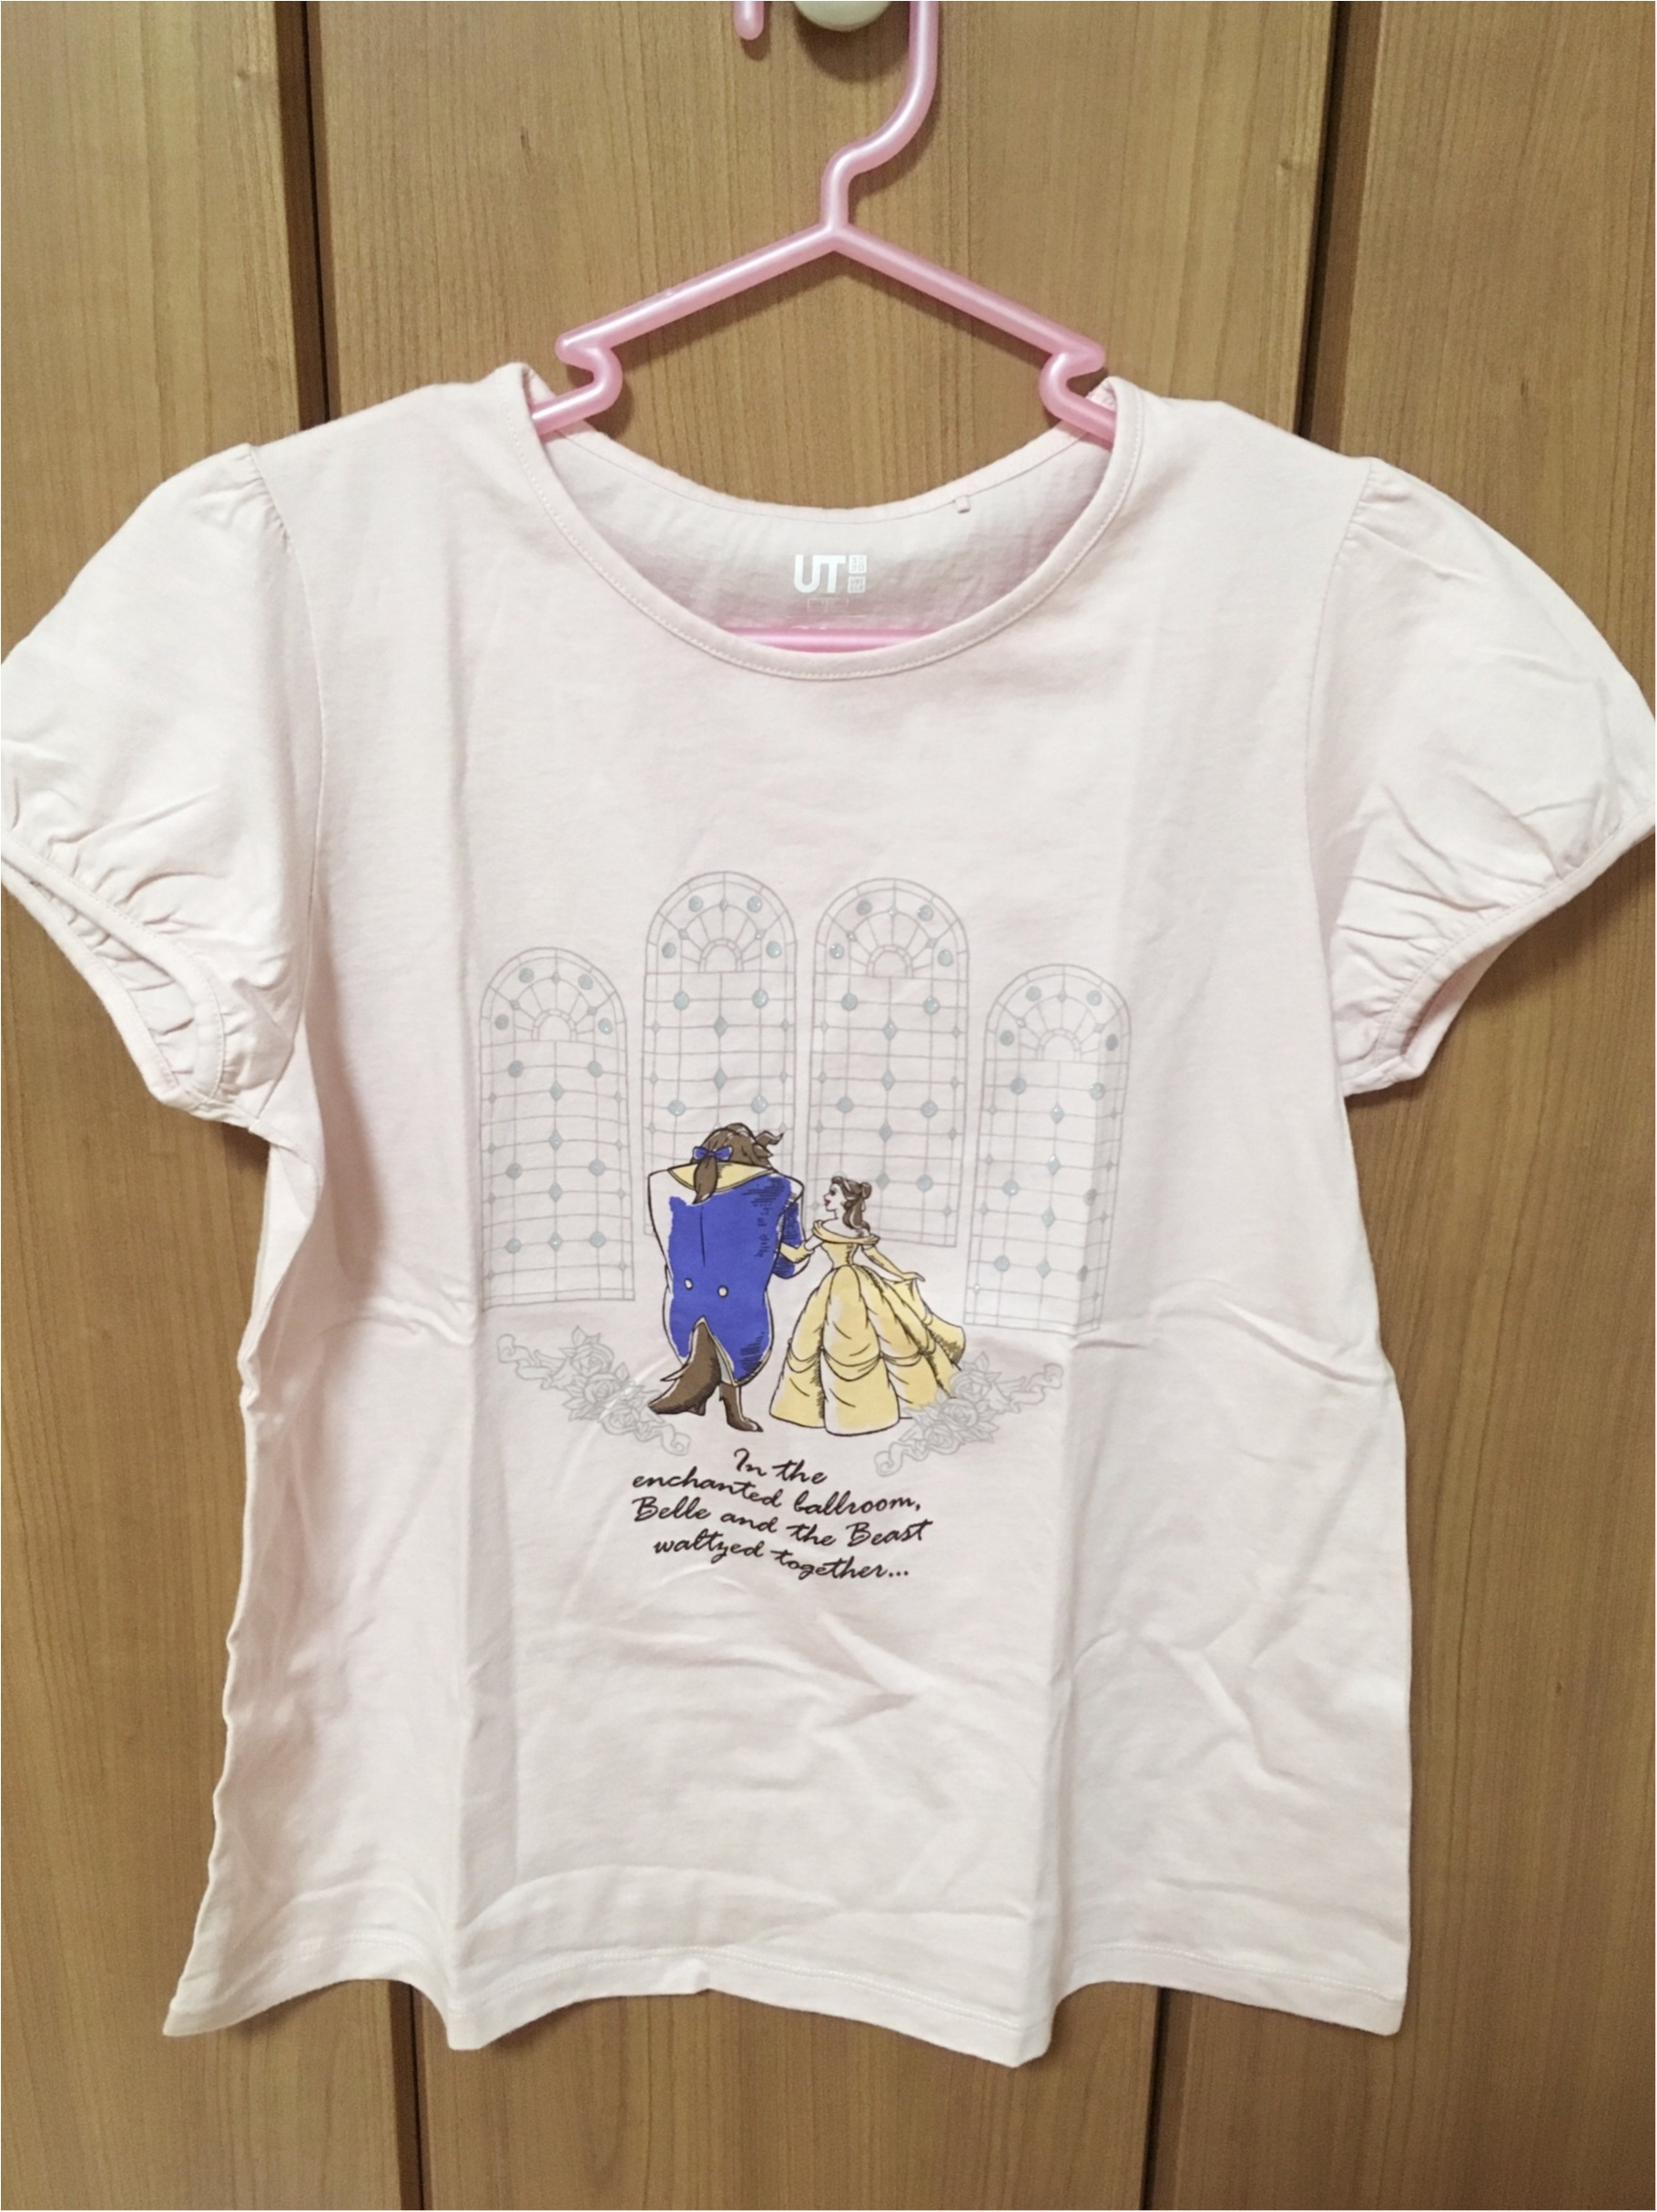 【UNIQLO】×【美女と野獣】〜Beauty and the Beast Collection〜今日から発売♡_2